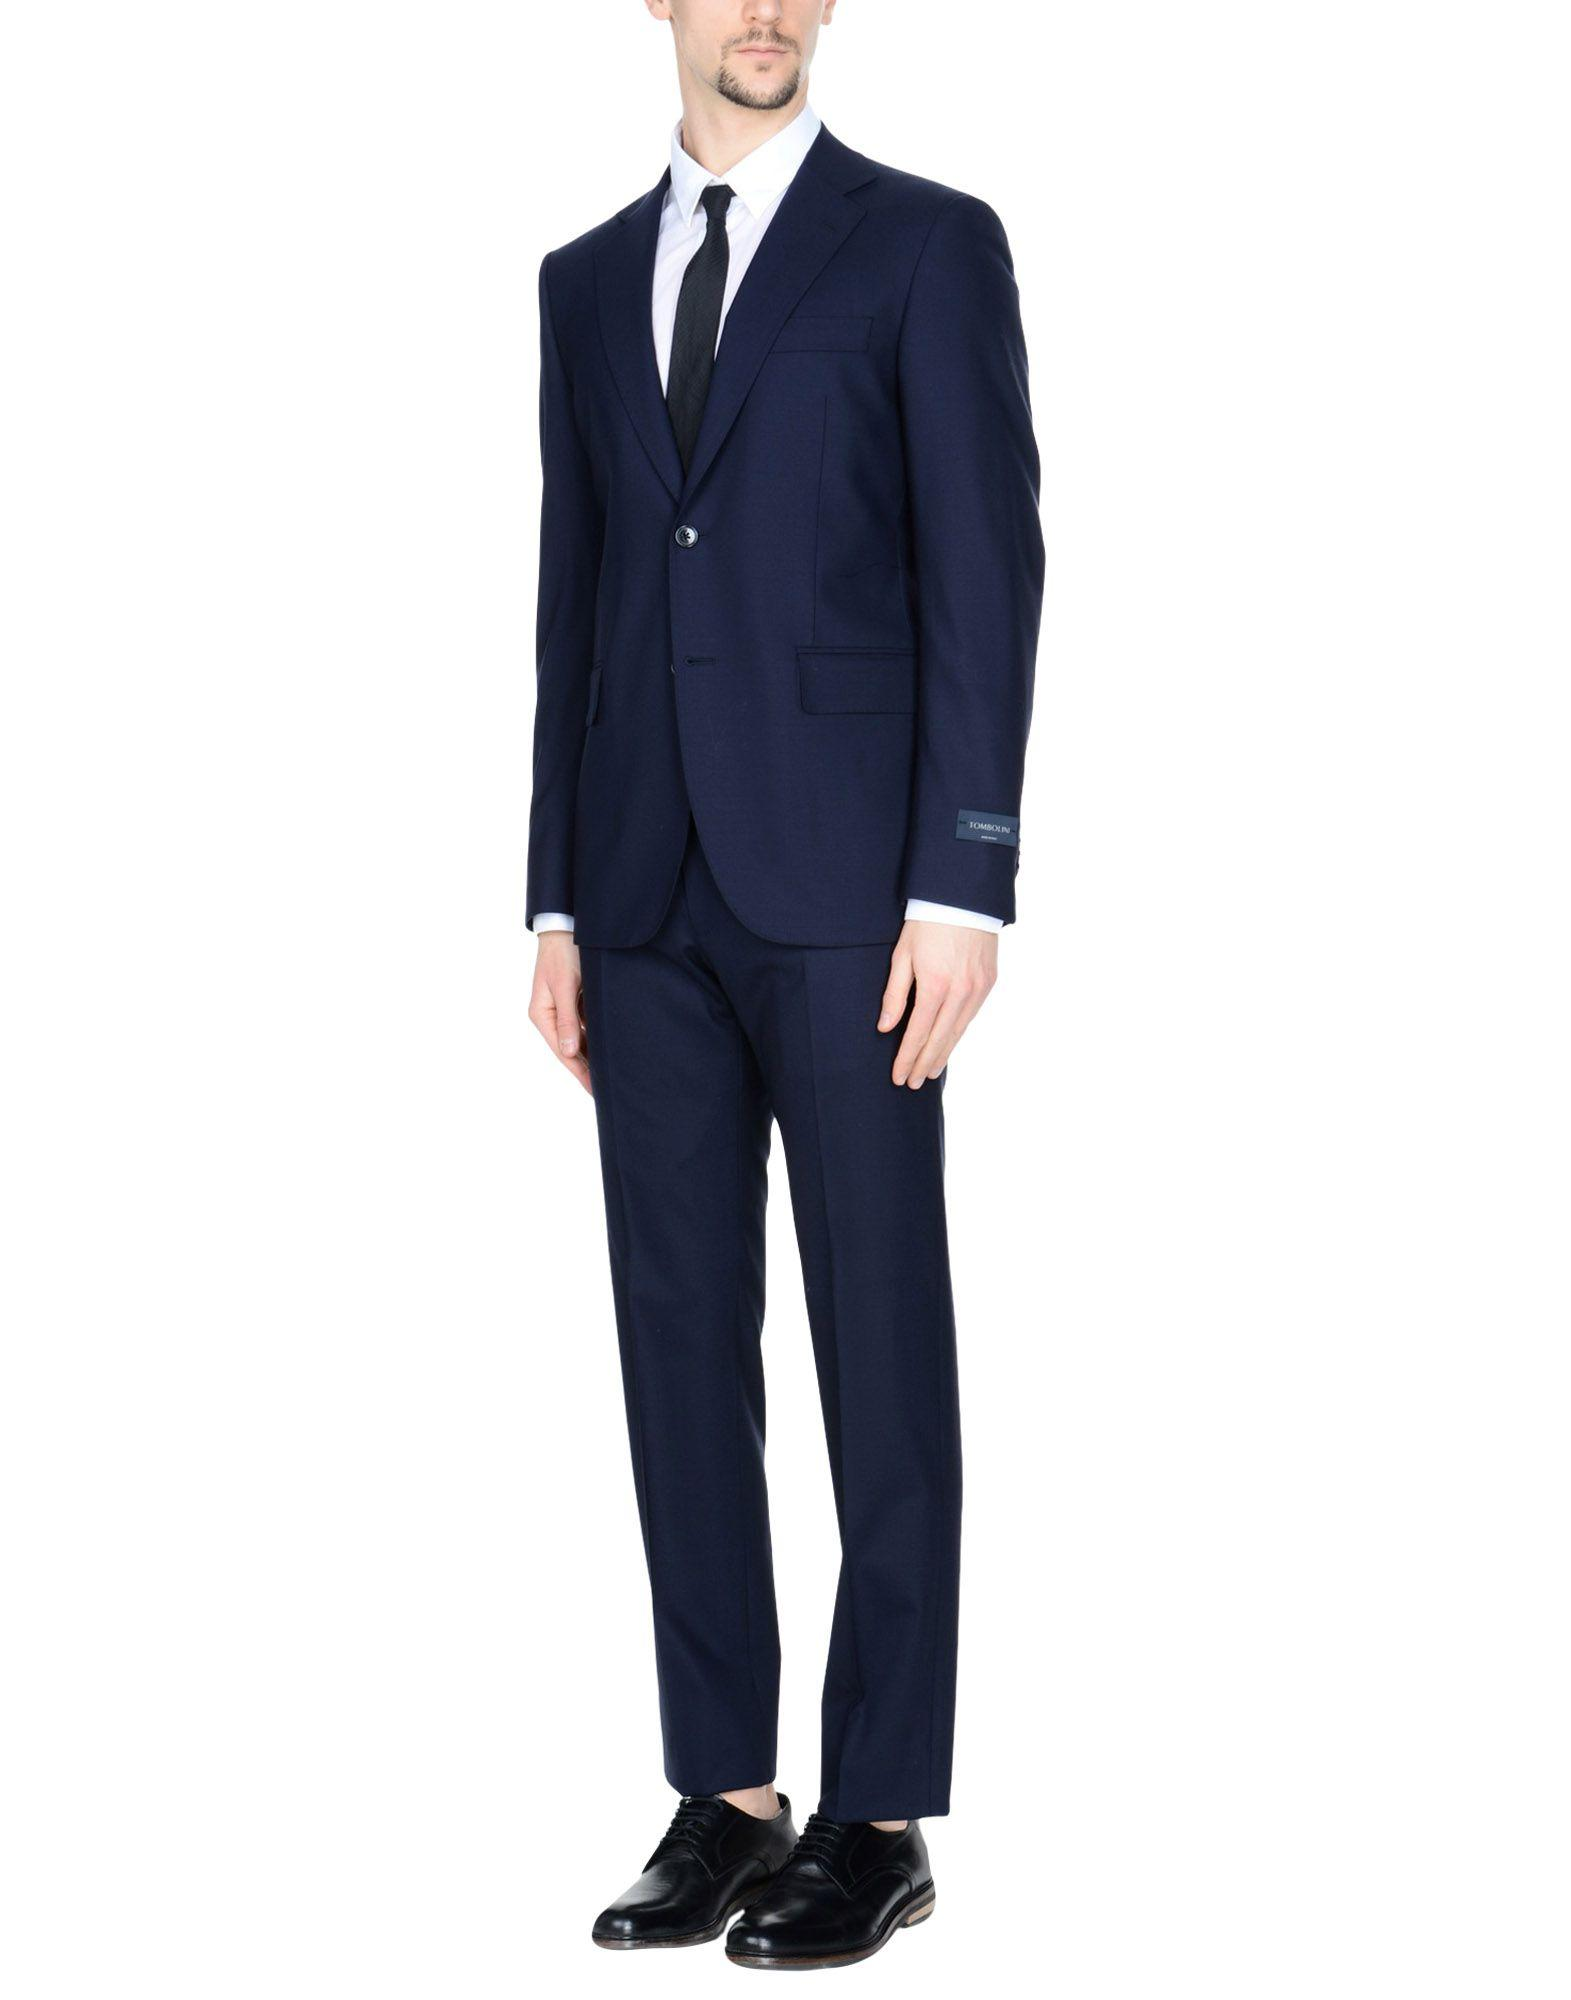 Tombolini Suits In Dark Blue